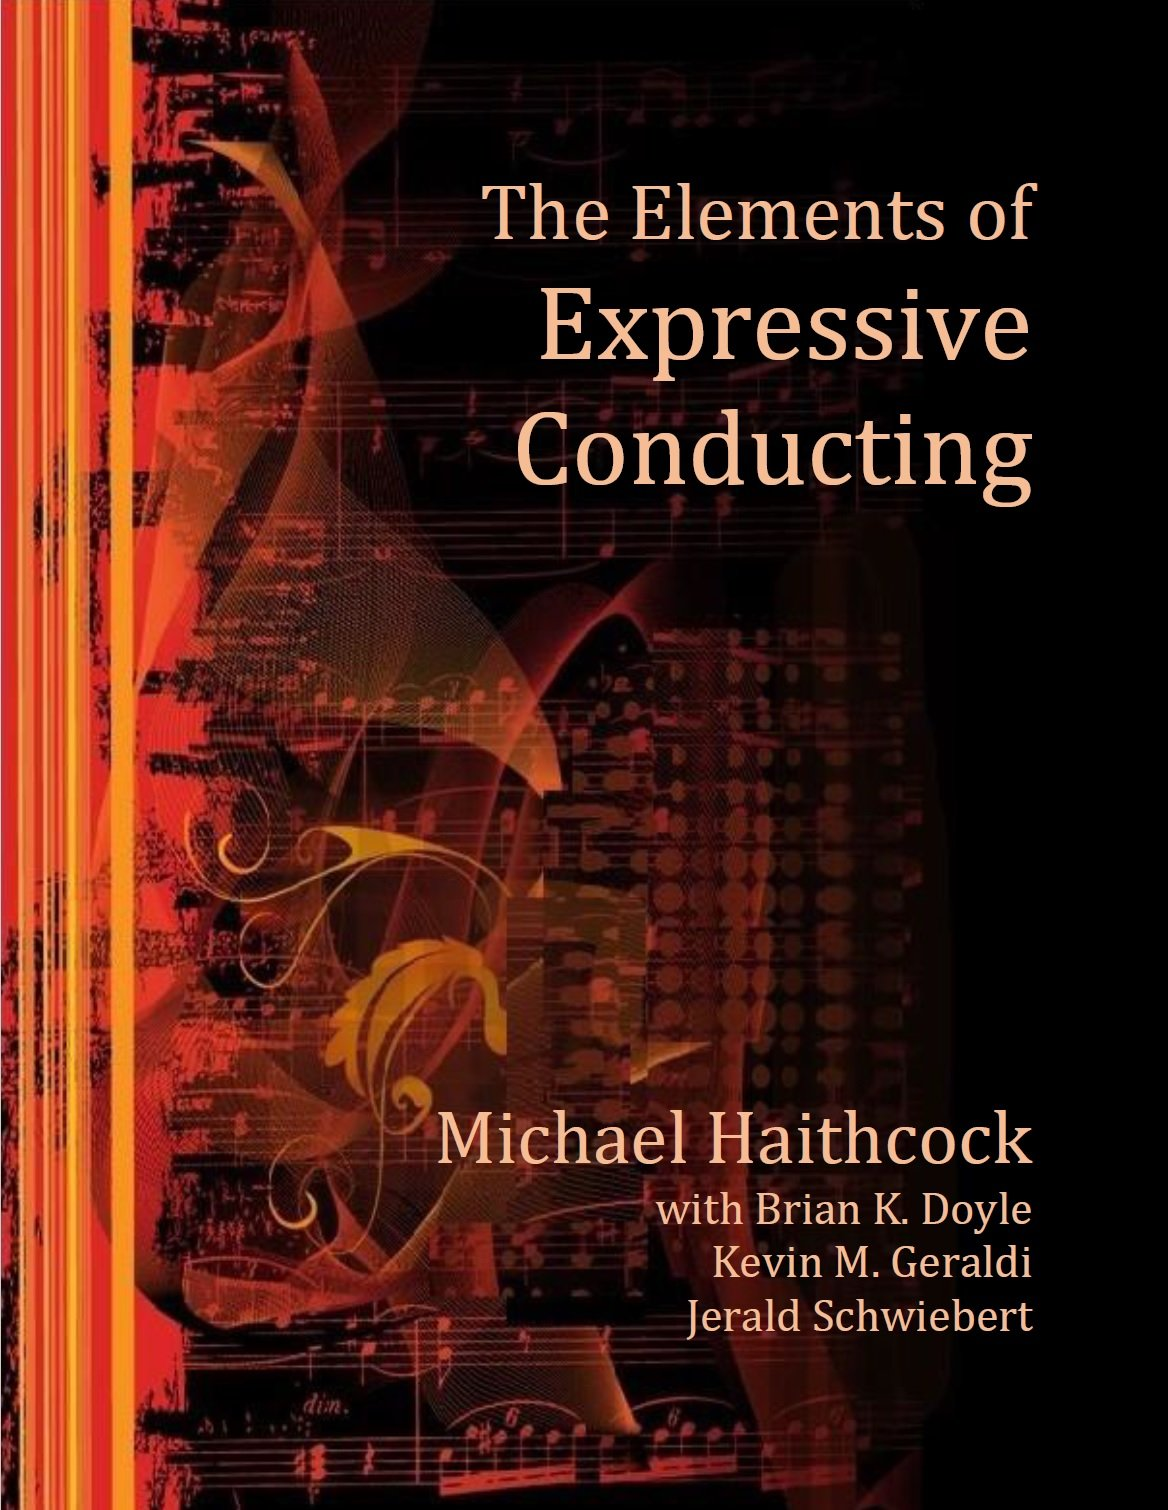 The Elements of Expressive Conducting by Michael Haithcock